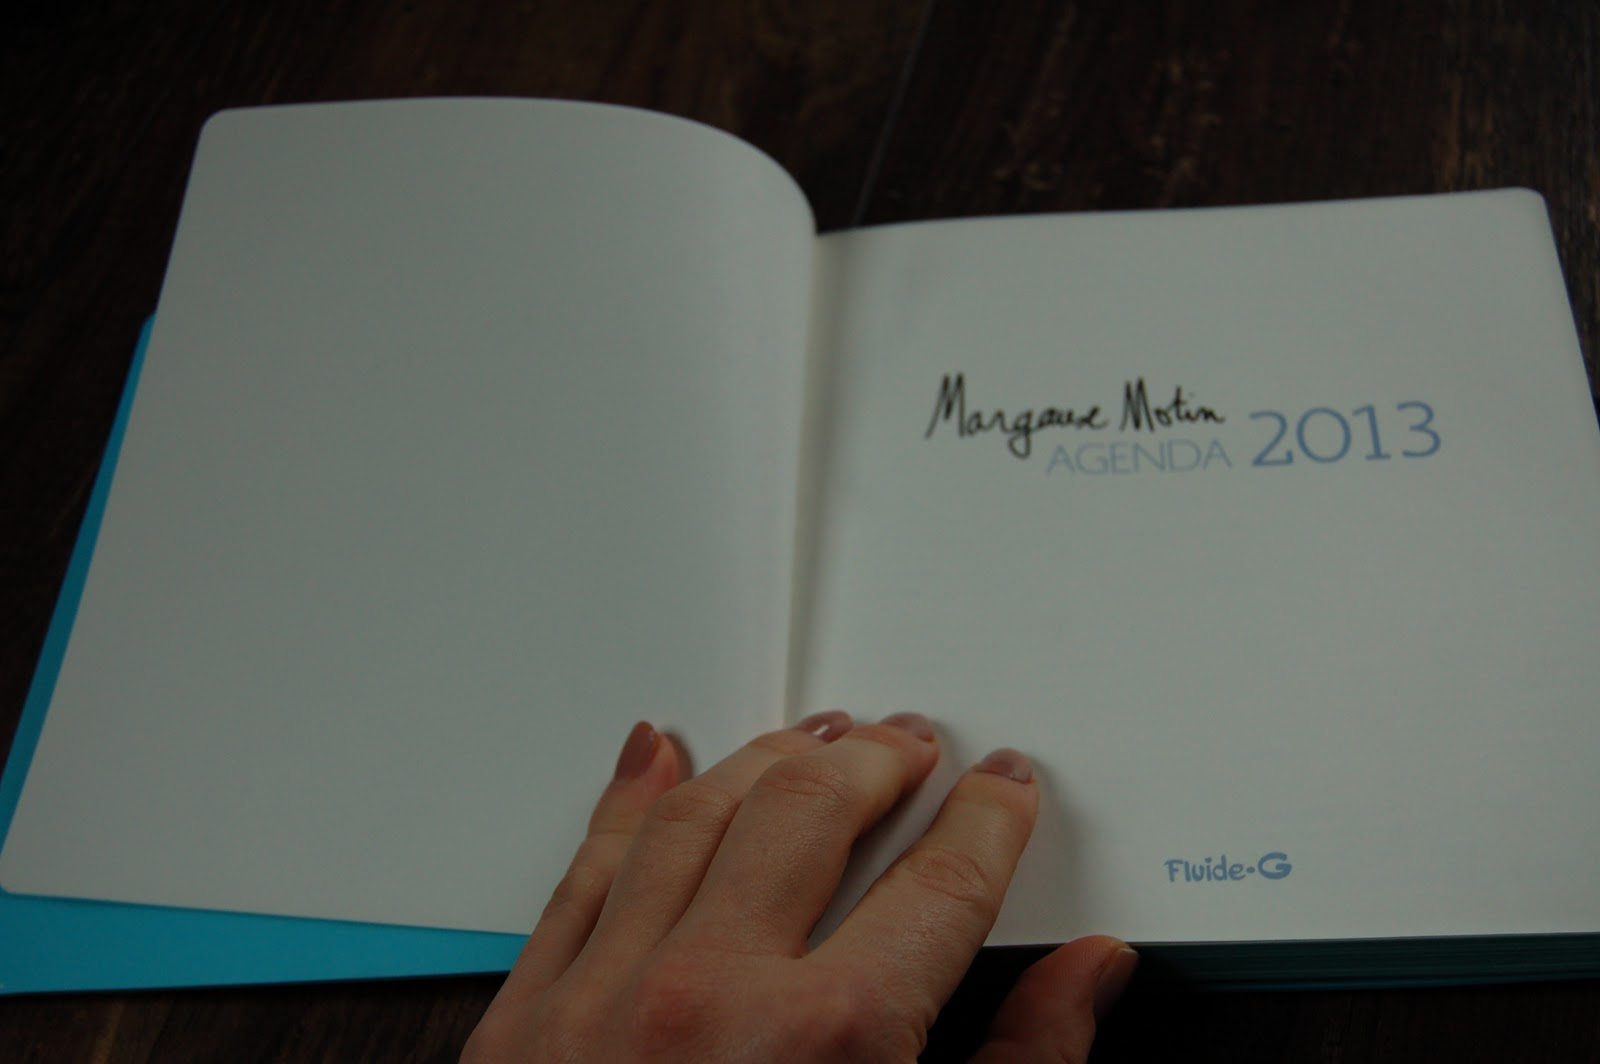 agenda-margaux-motin-2013-couverture-photo